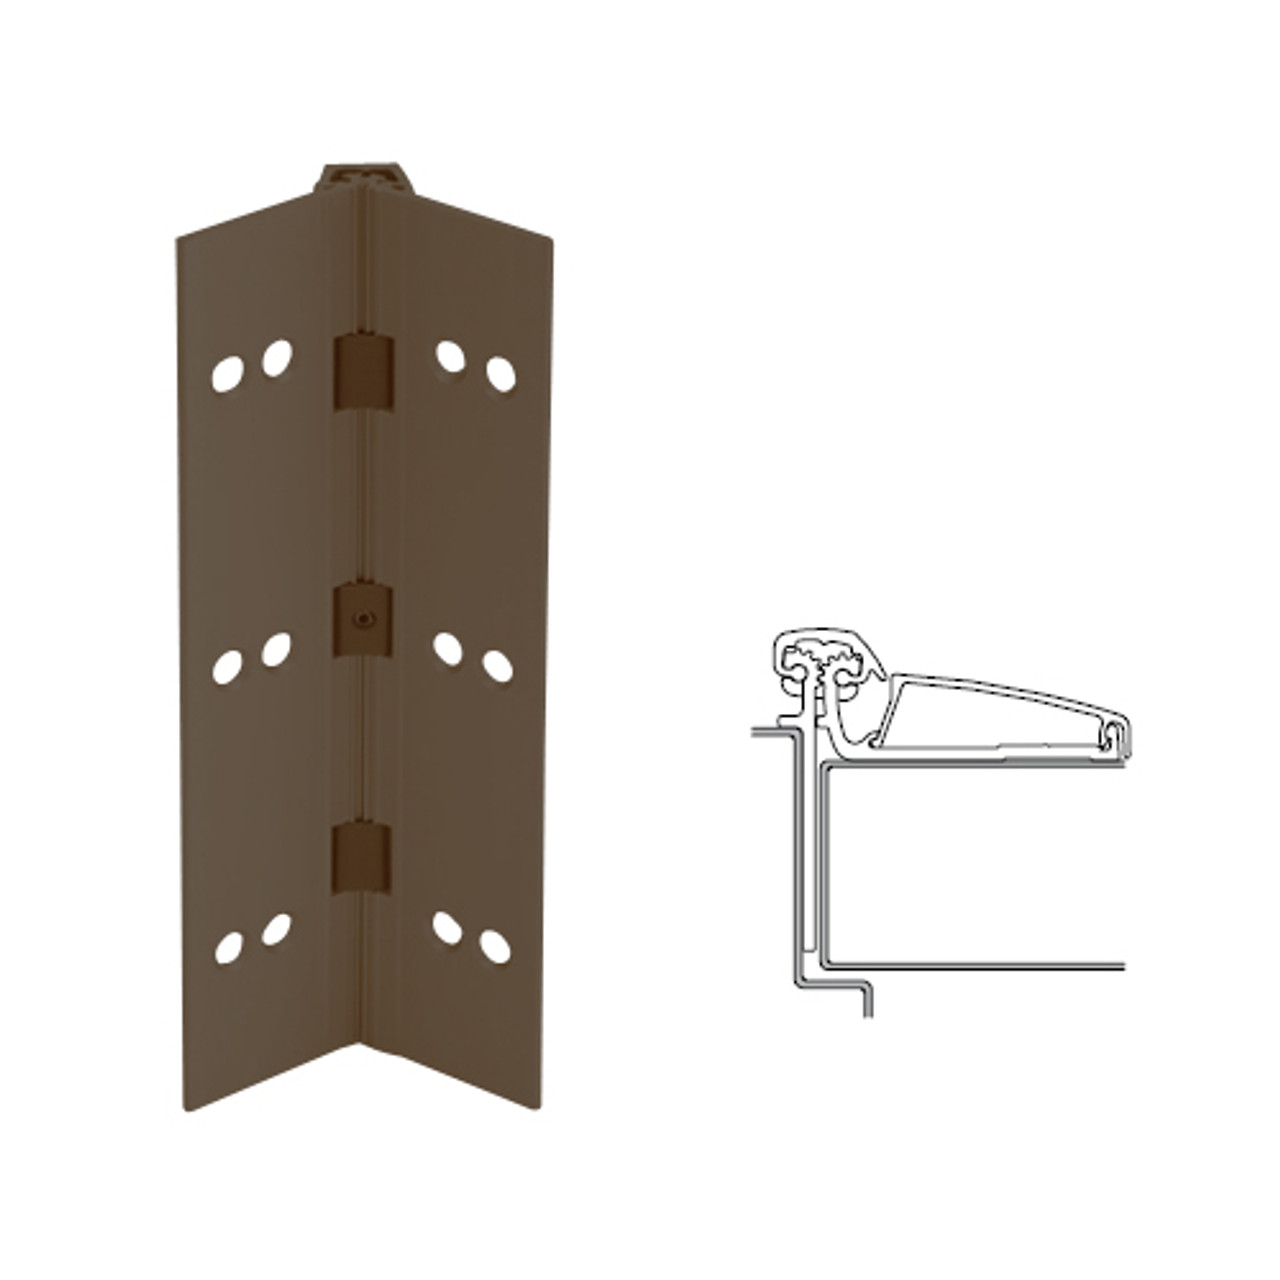 046XY-313AN-83-SECWDWD IVES Adjustable Half Surface Continuous Geared Hinges with Security Screws - Hex Pin Drive in Dark Bronze Anodized